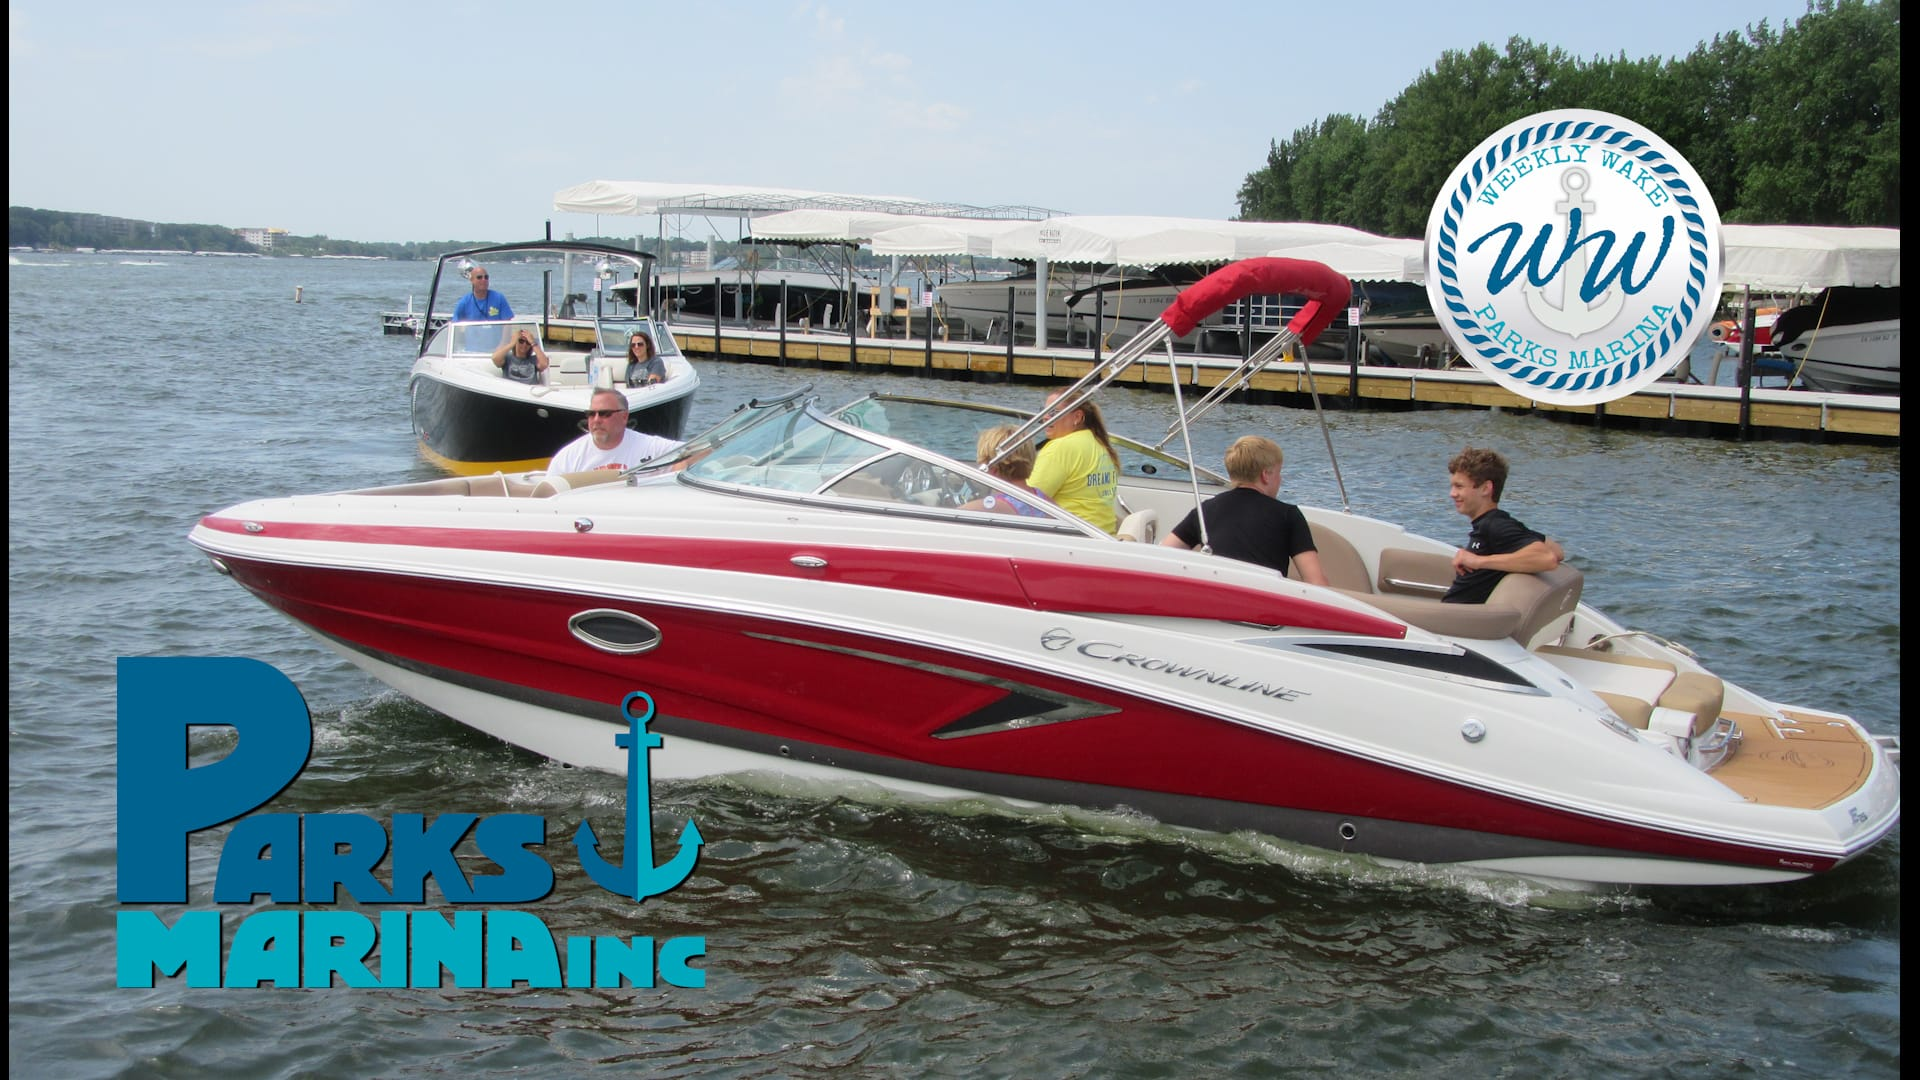 Weekly Wake and The Crownline Rendezvous